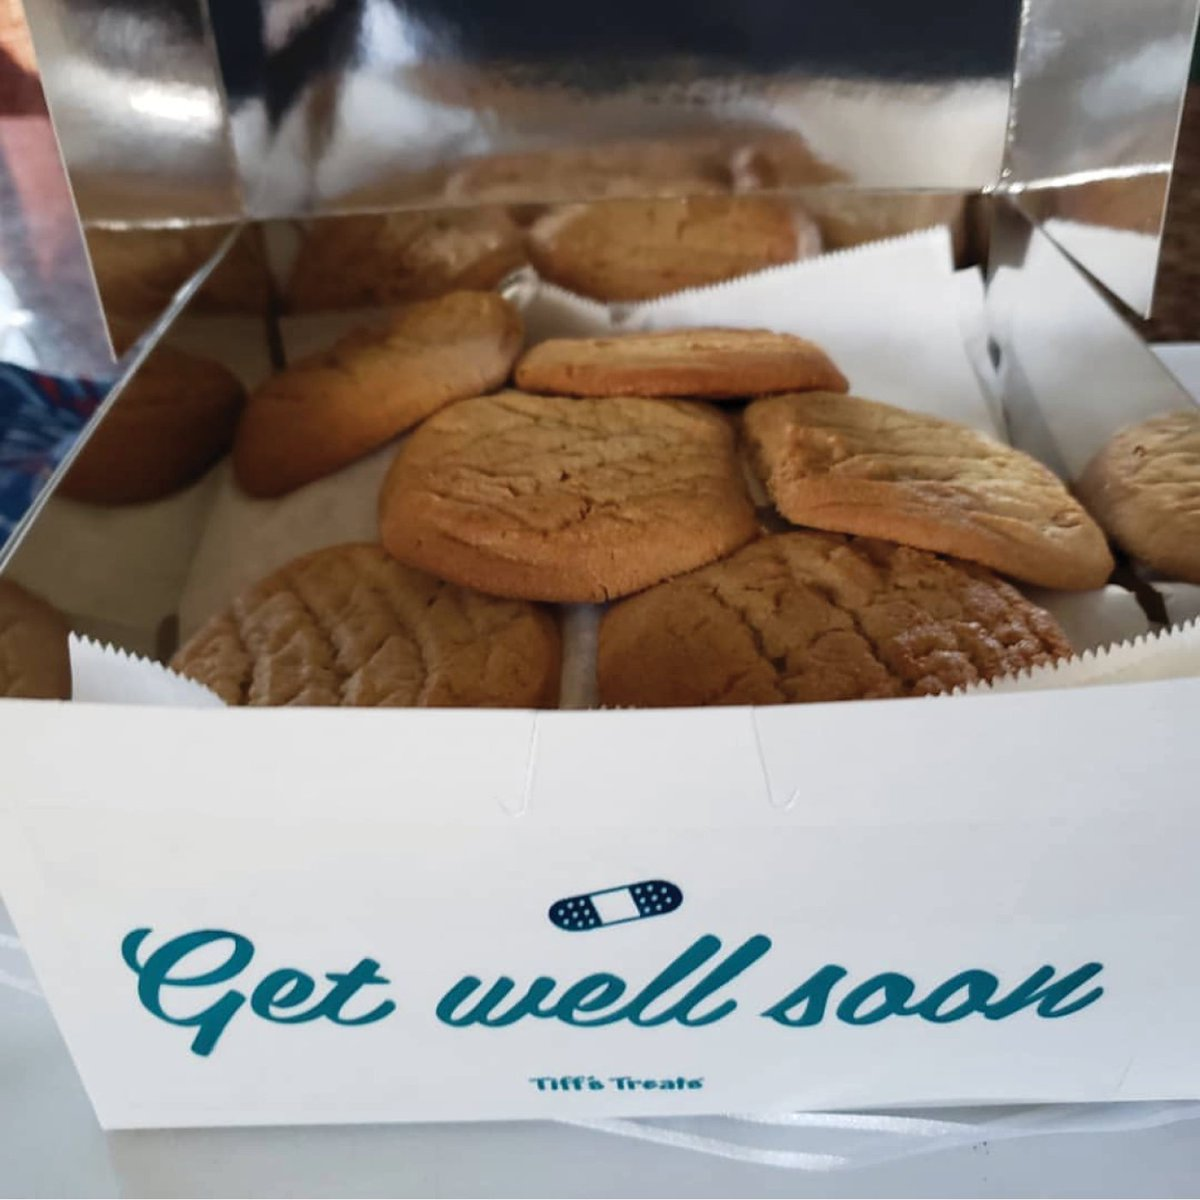 1afcd299405 The fastest way to cheer up is with #tiffstreats warm cookies. Are Peanut  Butter cookies the perfect prescription for you? Or a different flavor?